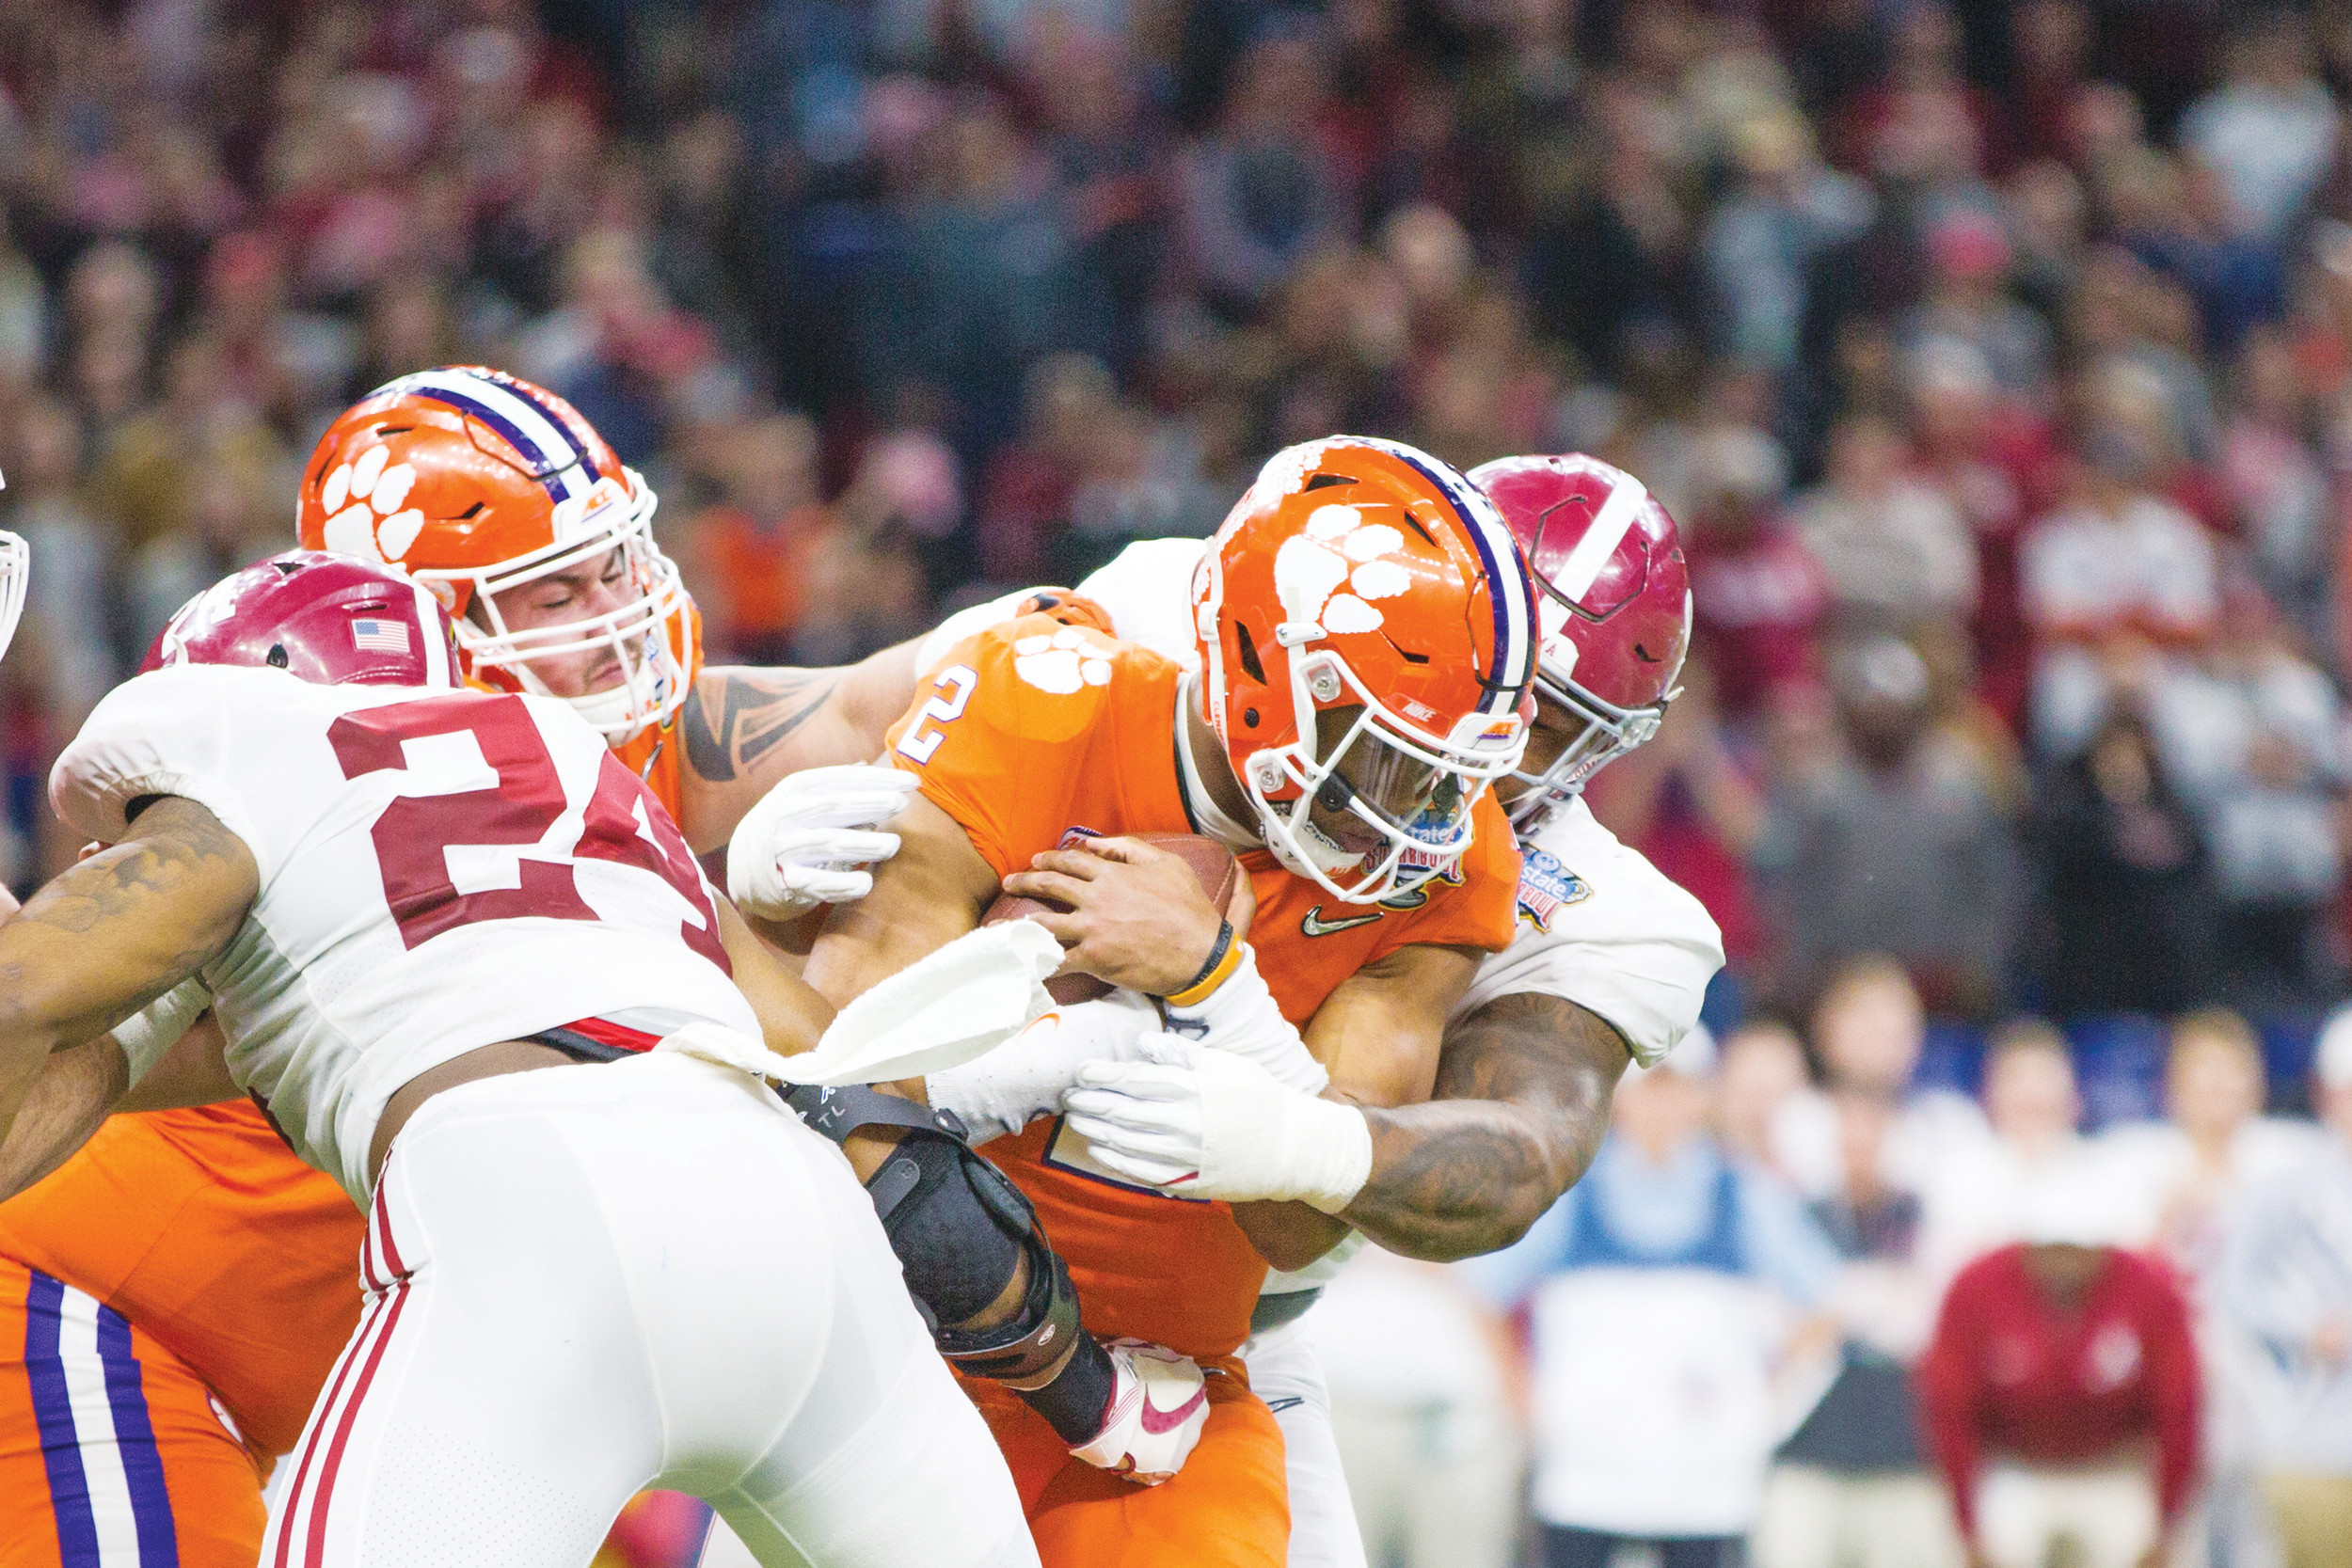 An Alabama defender wraps up Clemson quarterback Kelly Bryant during the Tigers' 24-6 loss to the Crimson Tide on Monday in the